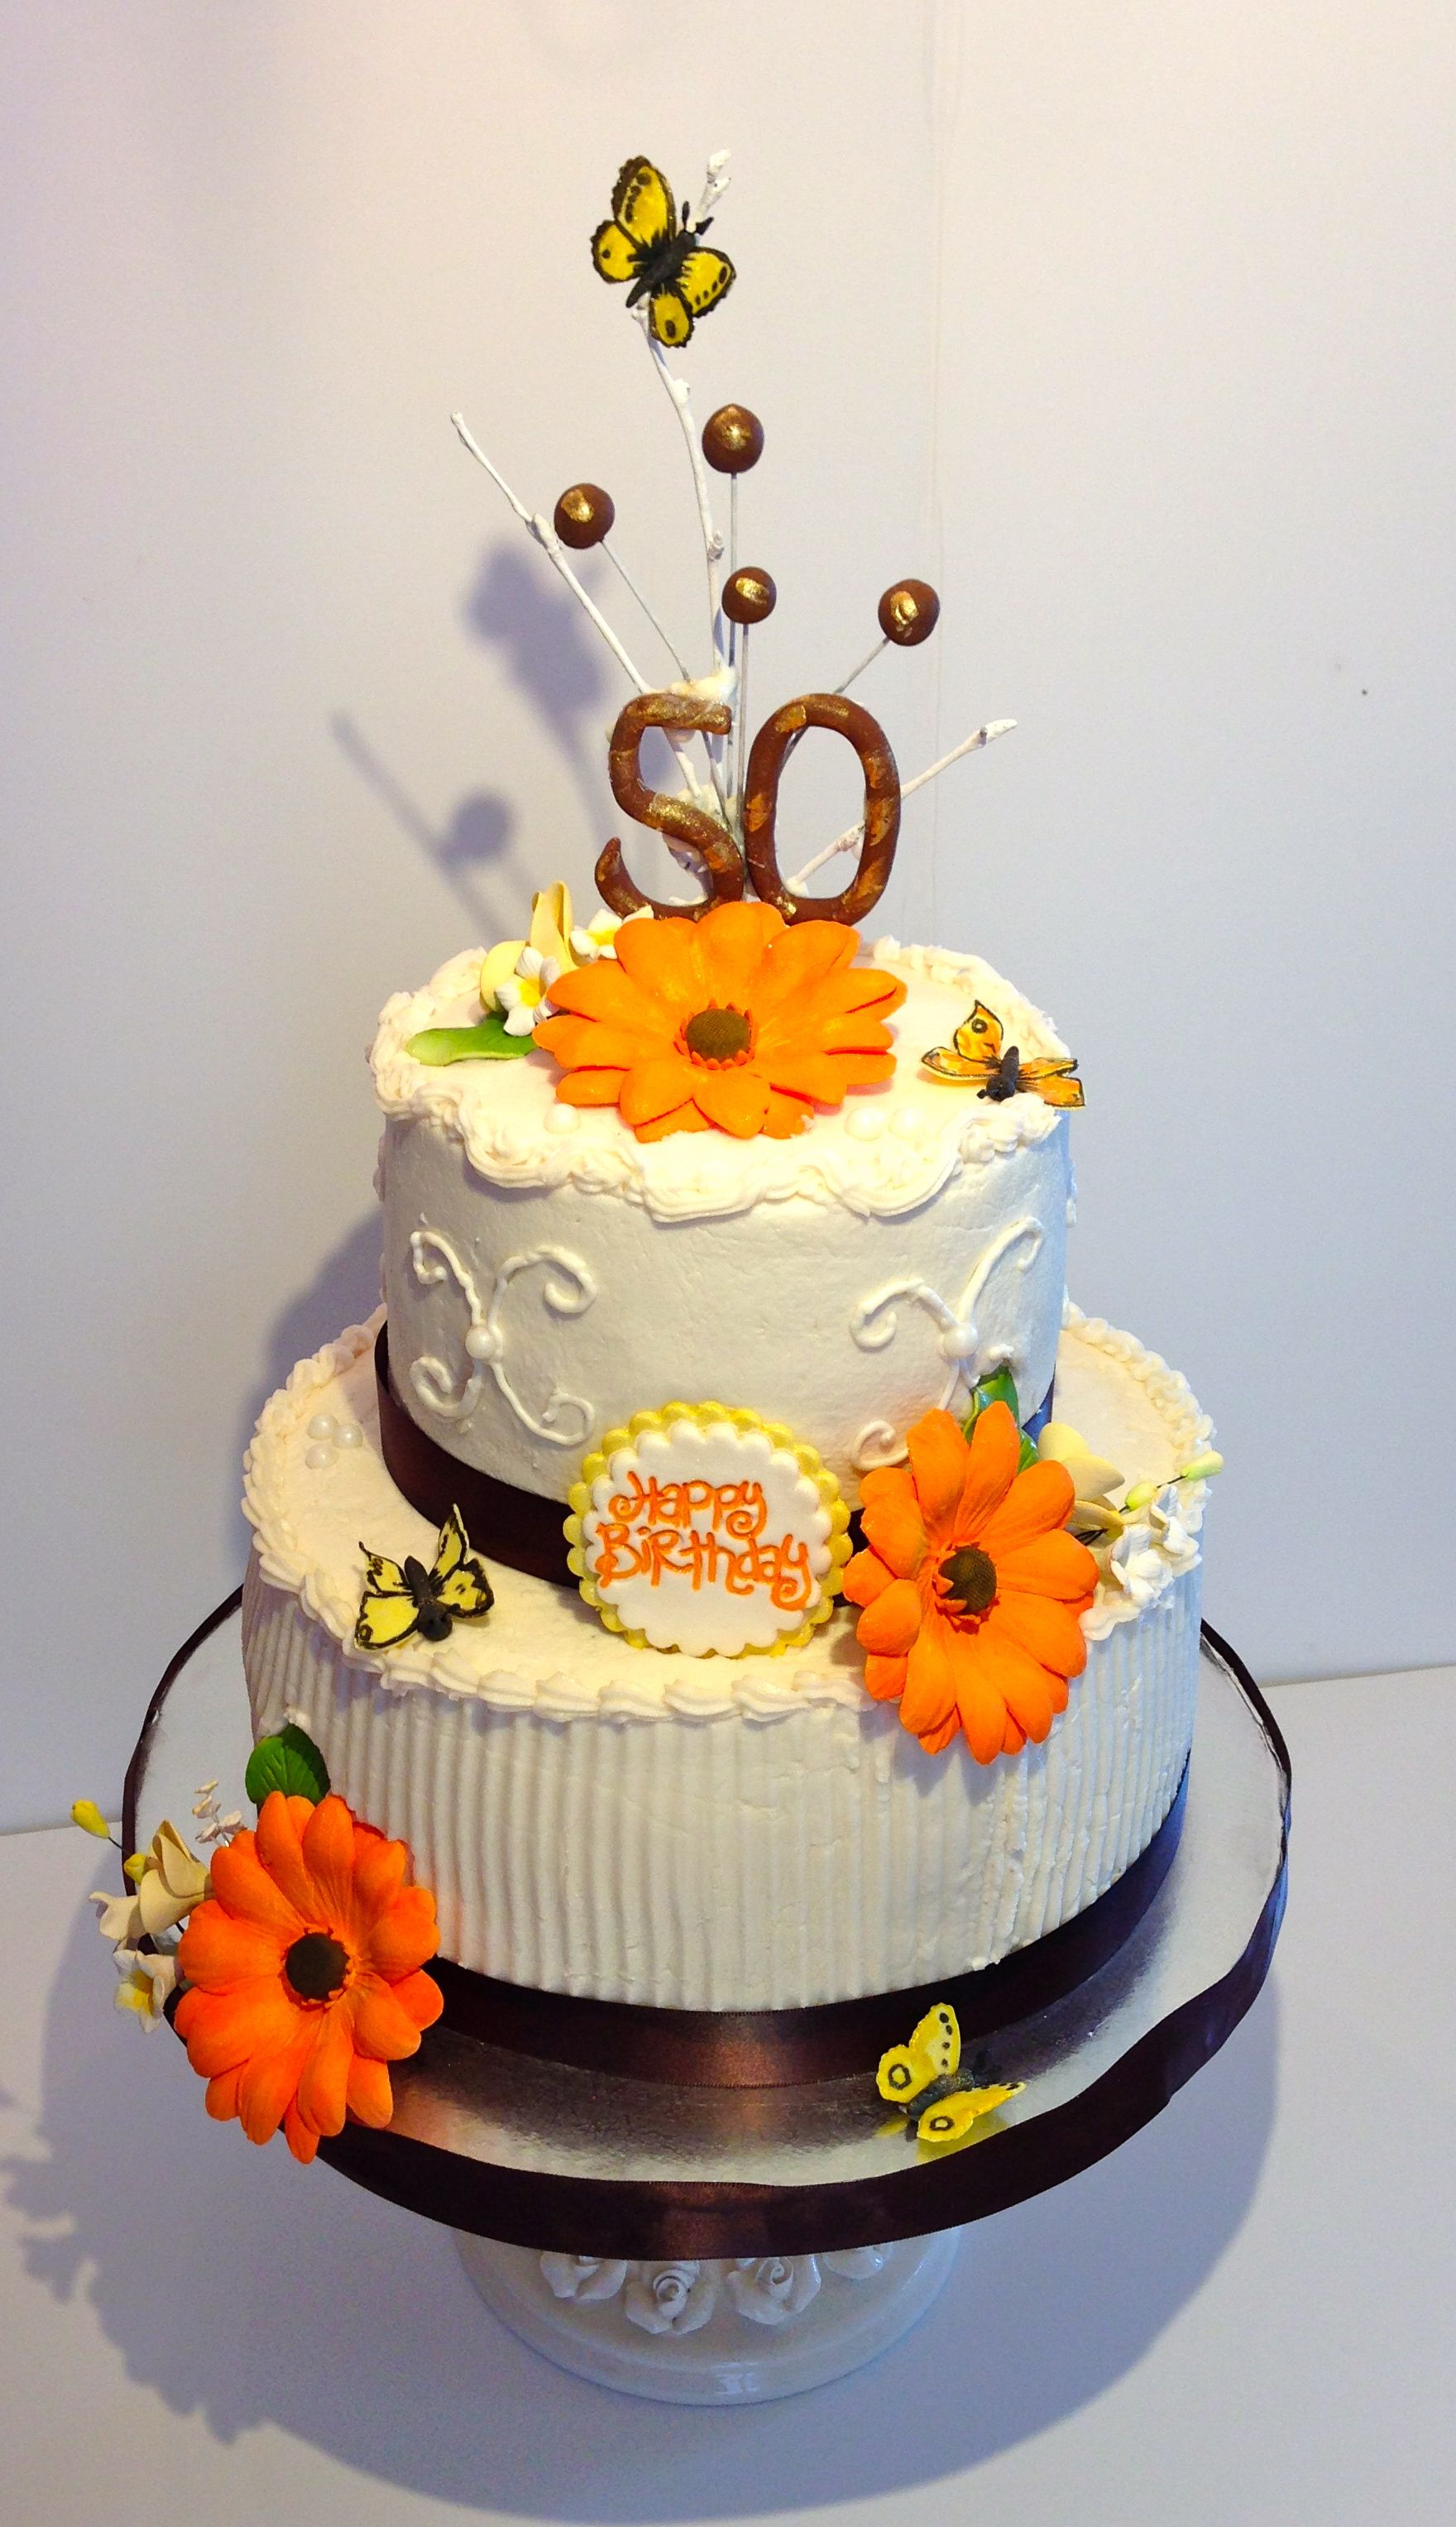 50th birthday cake Chocolate chunk cake filled with fresh